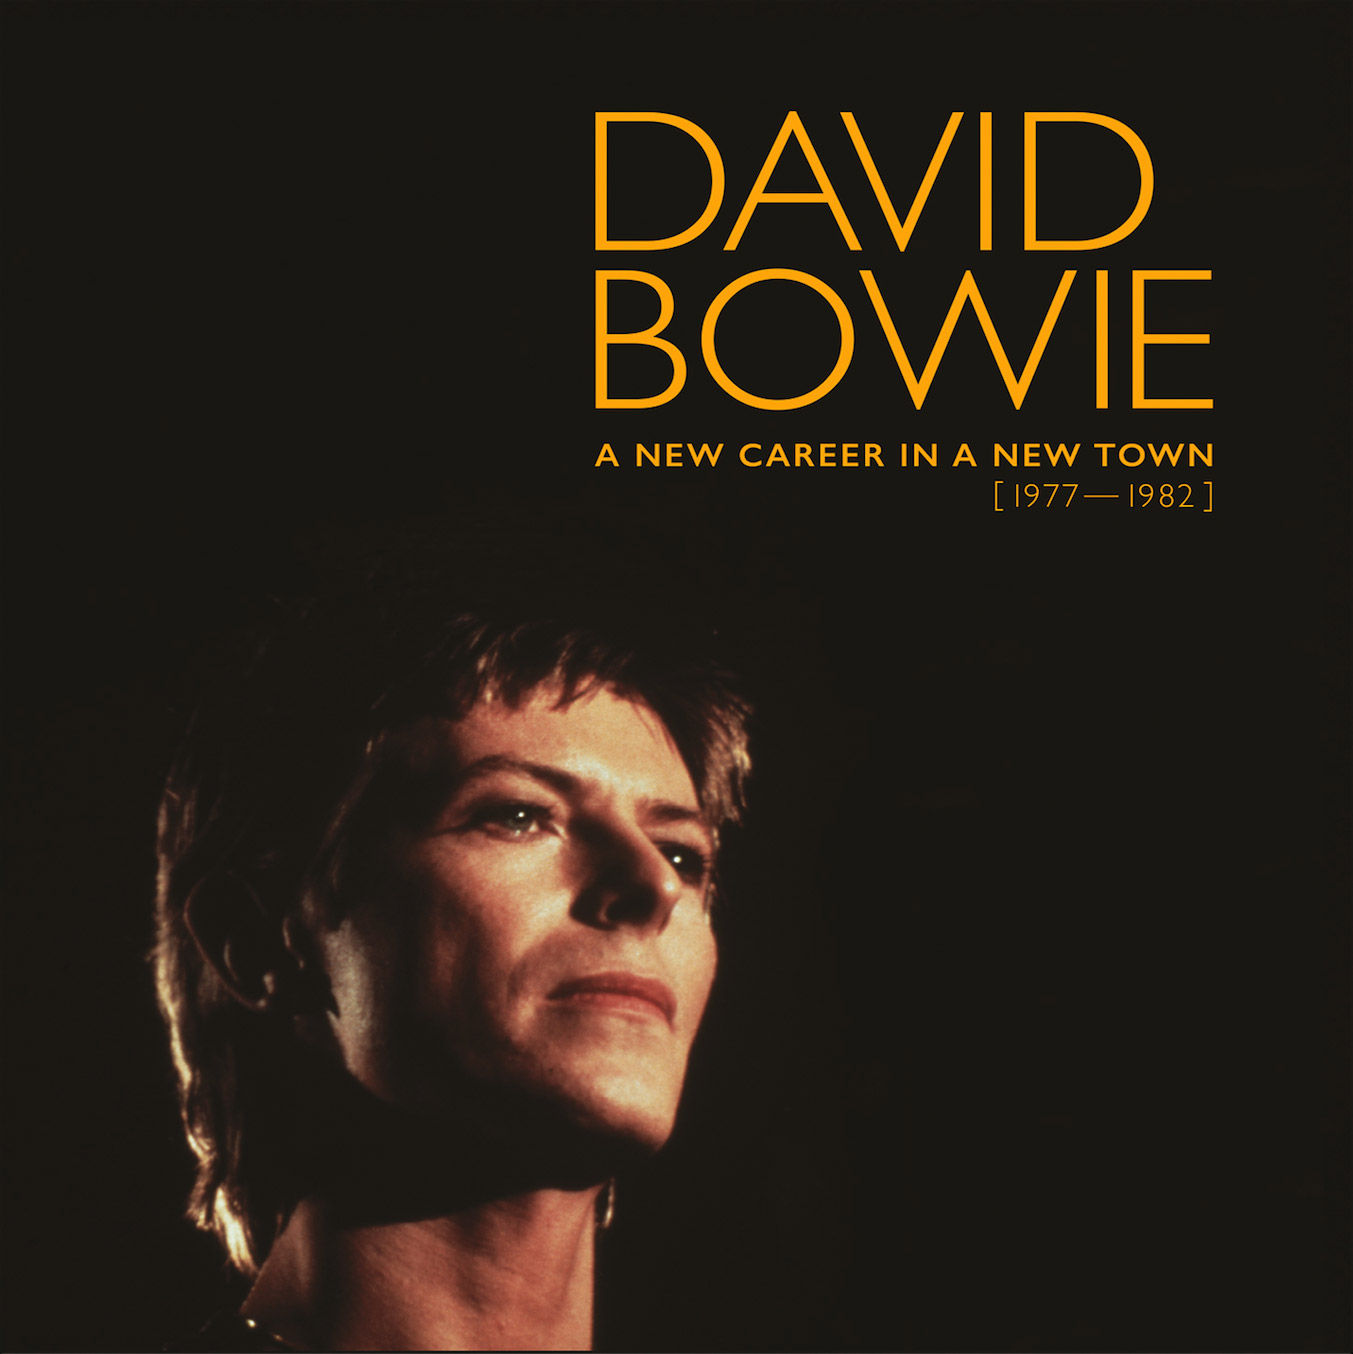 David Bowie / A New Careeer In A New Town 1977-1982 / 13LP or 11CD box